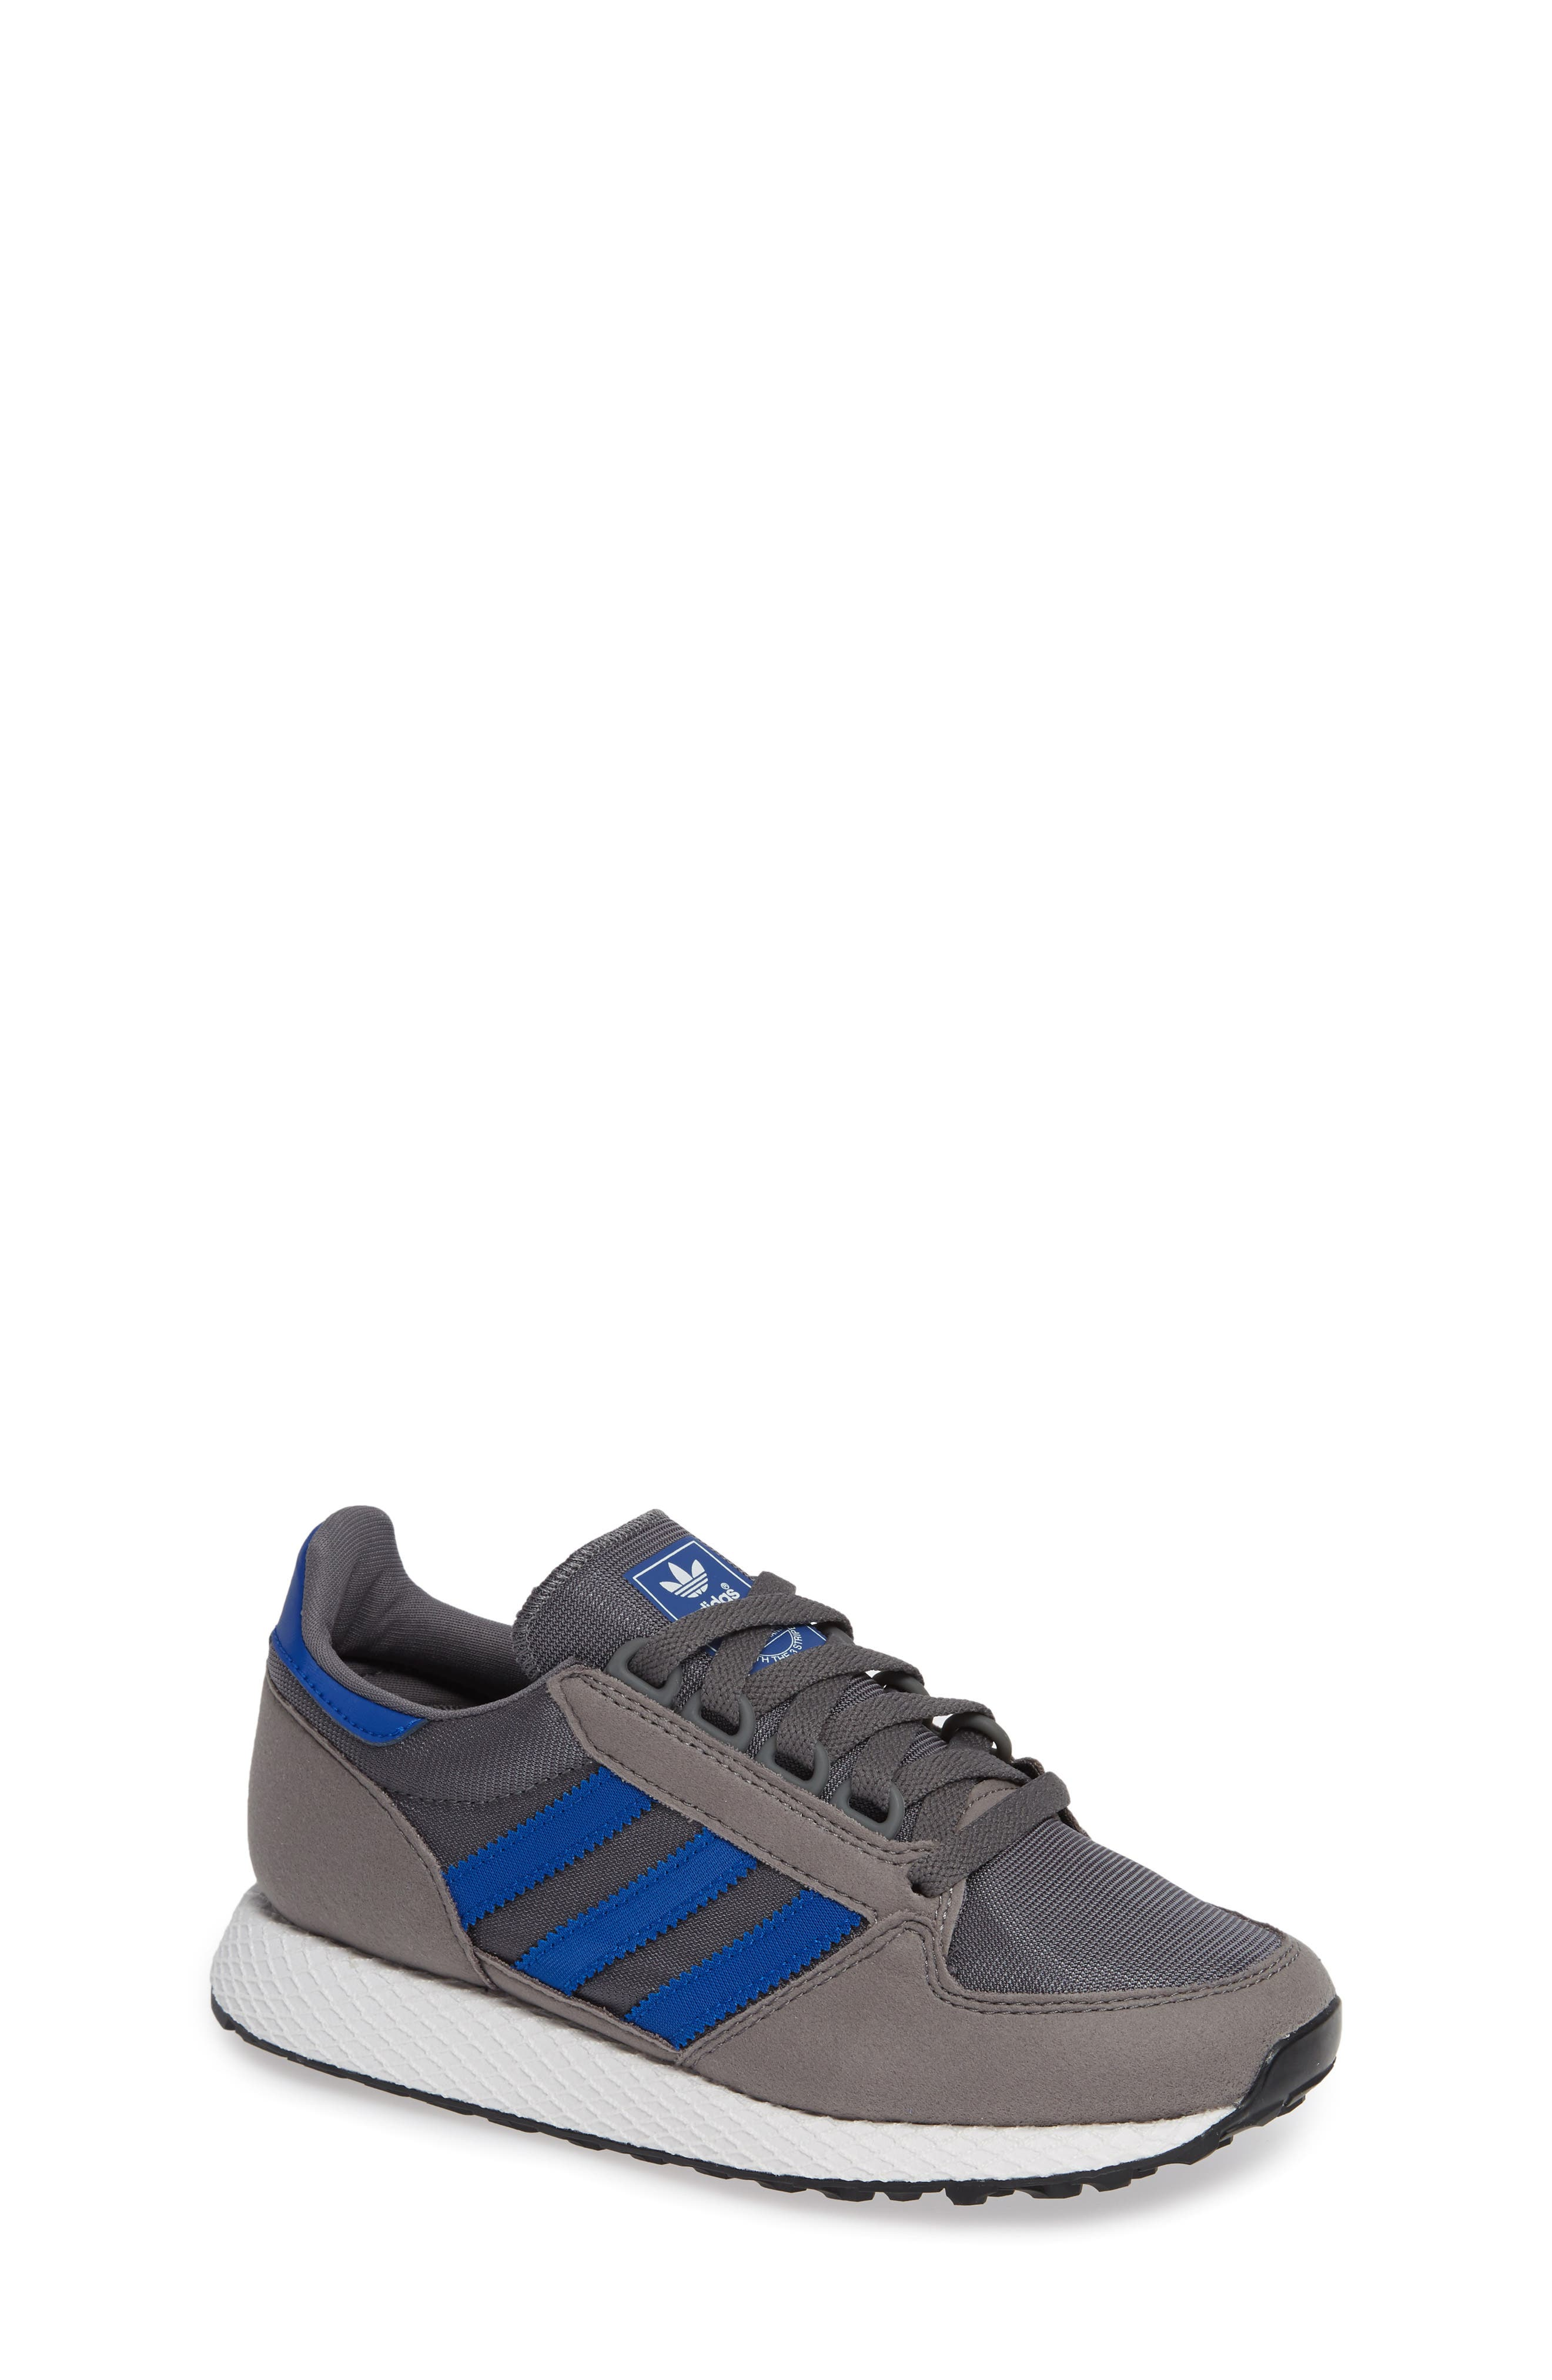 Forest Grove Sneaker,                             Main thumbnail 1, color,                             GREY/ COLLEGIATE ROYAL/ WHITE